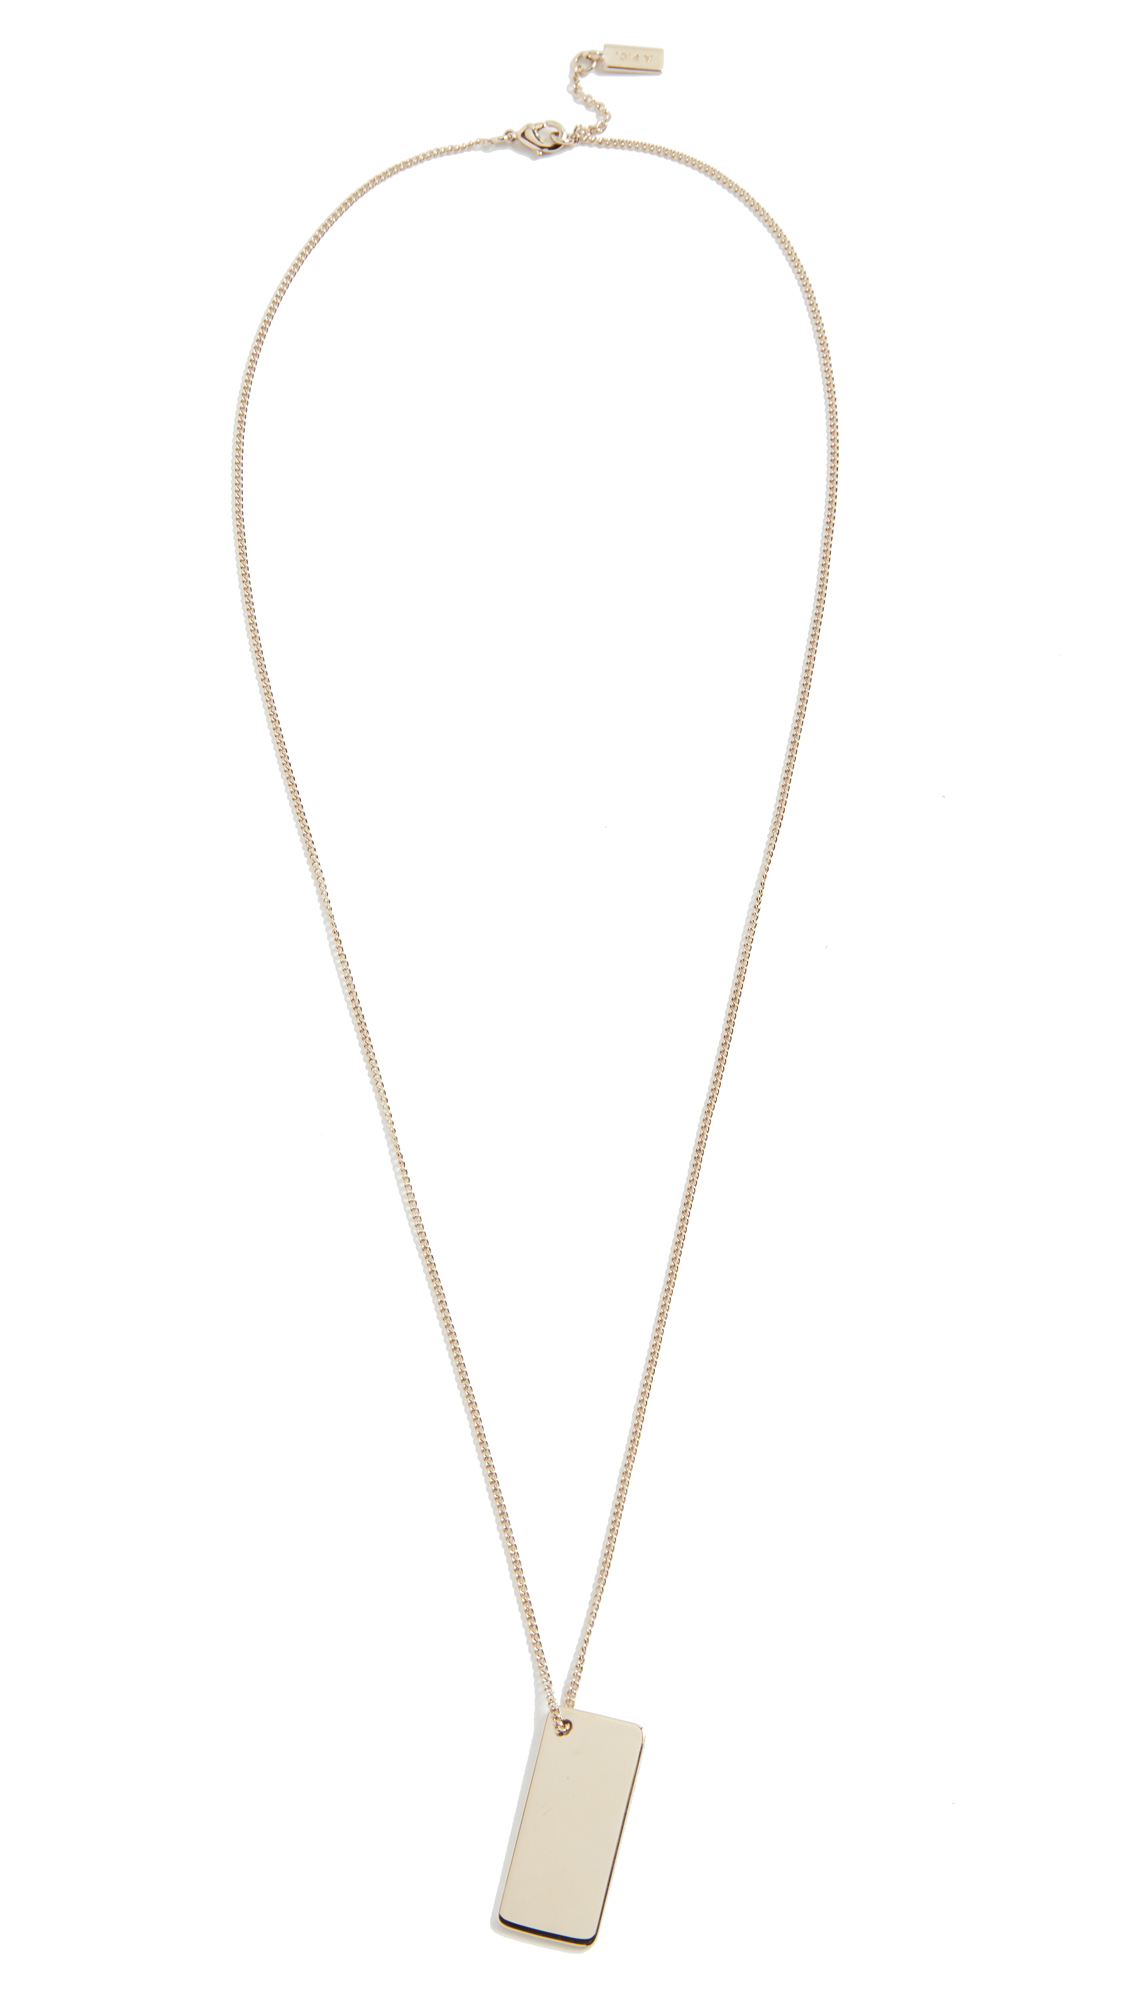 a s lyst mael c men gold p for necklace apc jewelry